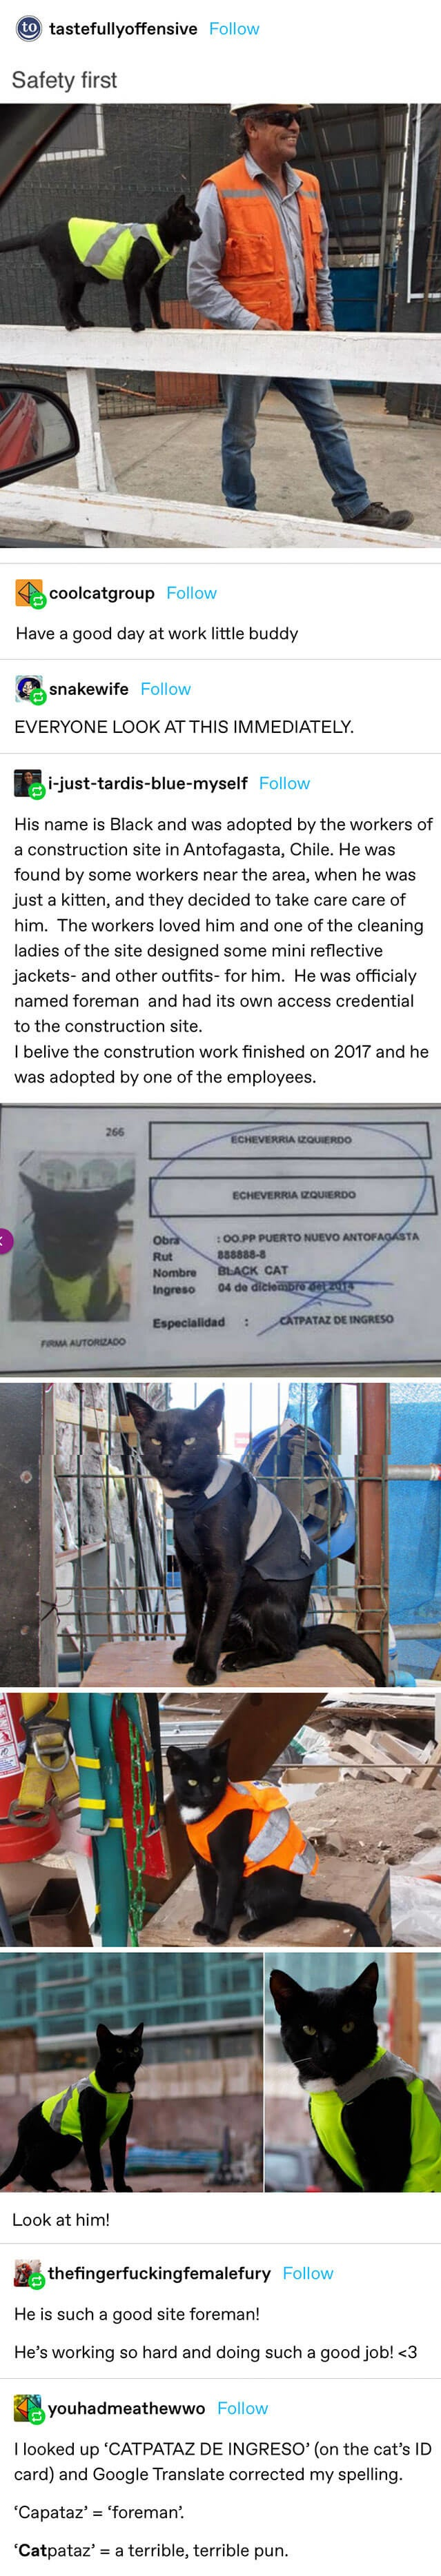 a cat in a safety jacket with info saying it was adopted by construction workers in Chile and named a foreman